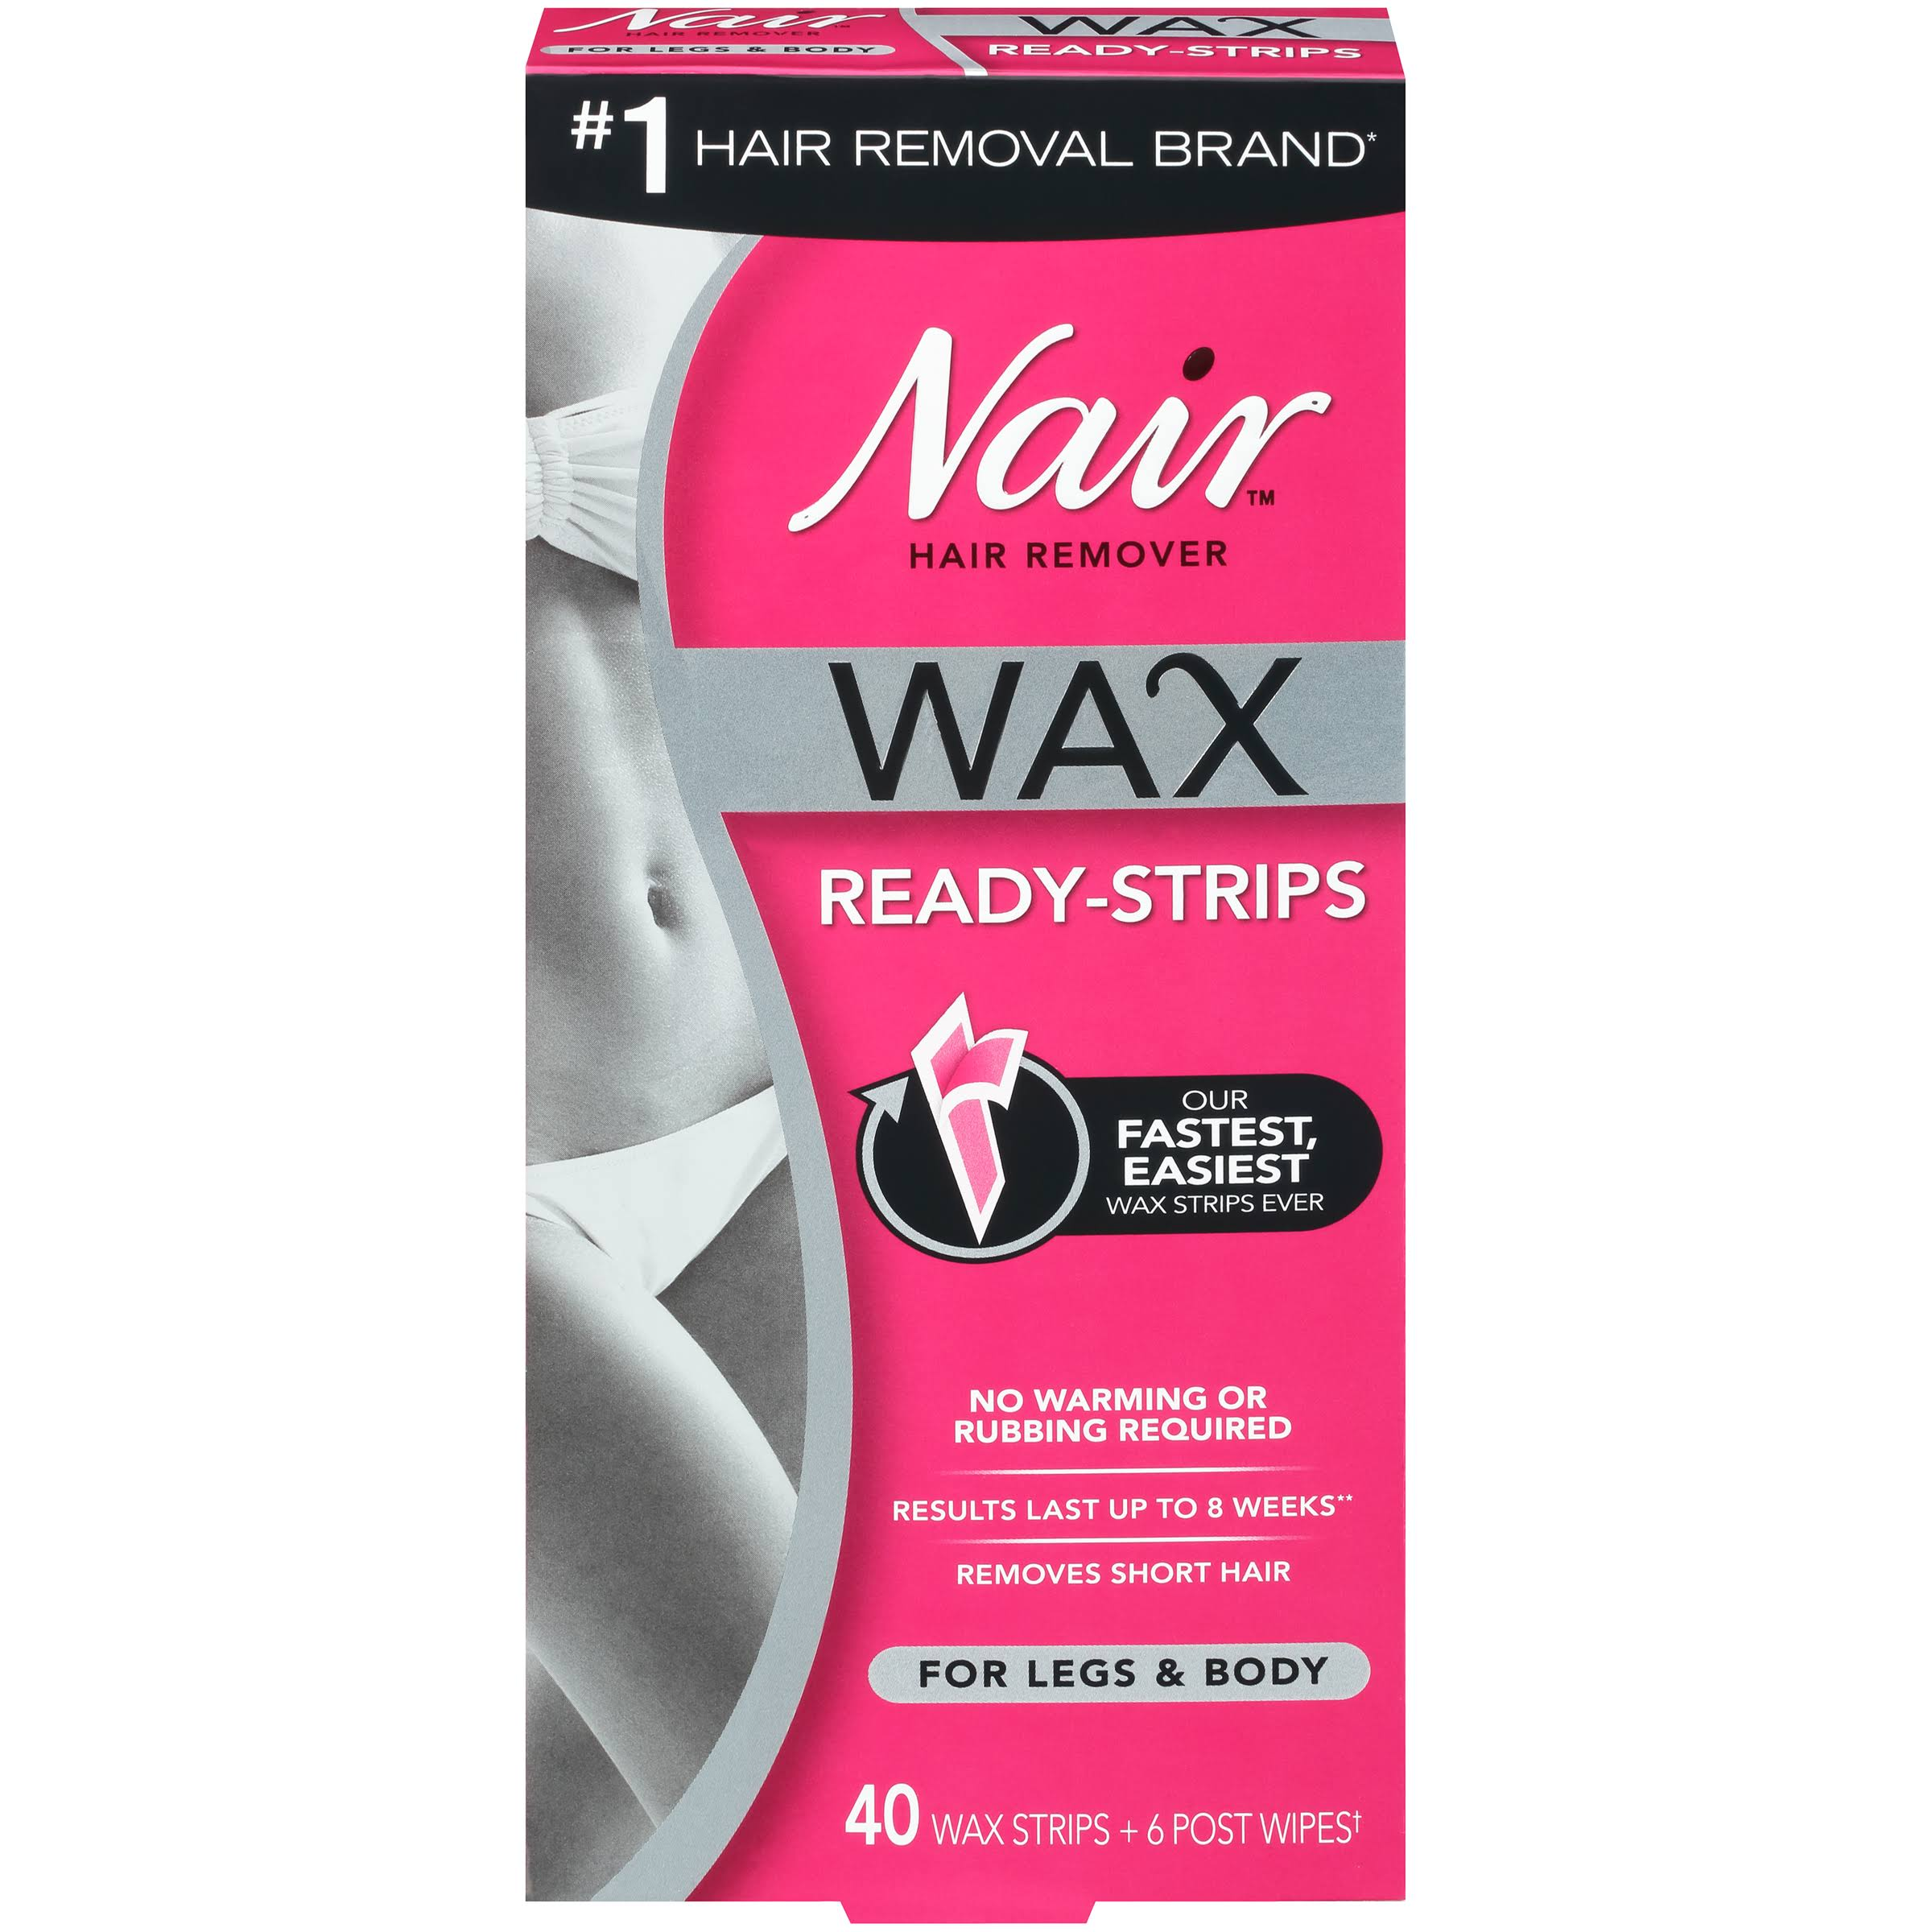 Nair Hair Remover Wax Ready - Strips - 40 ct